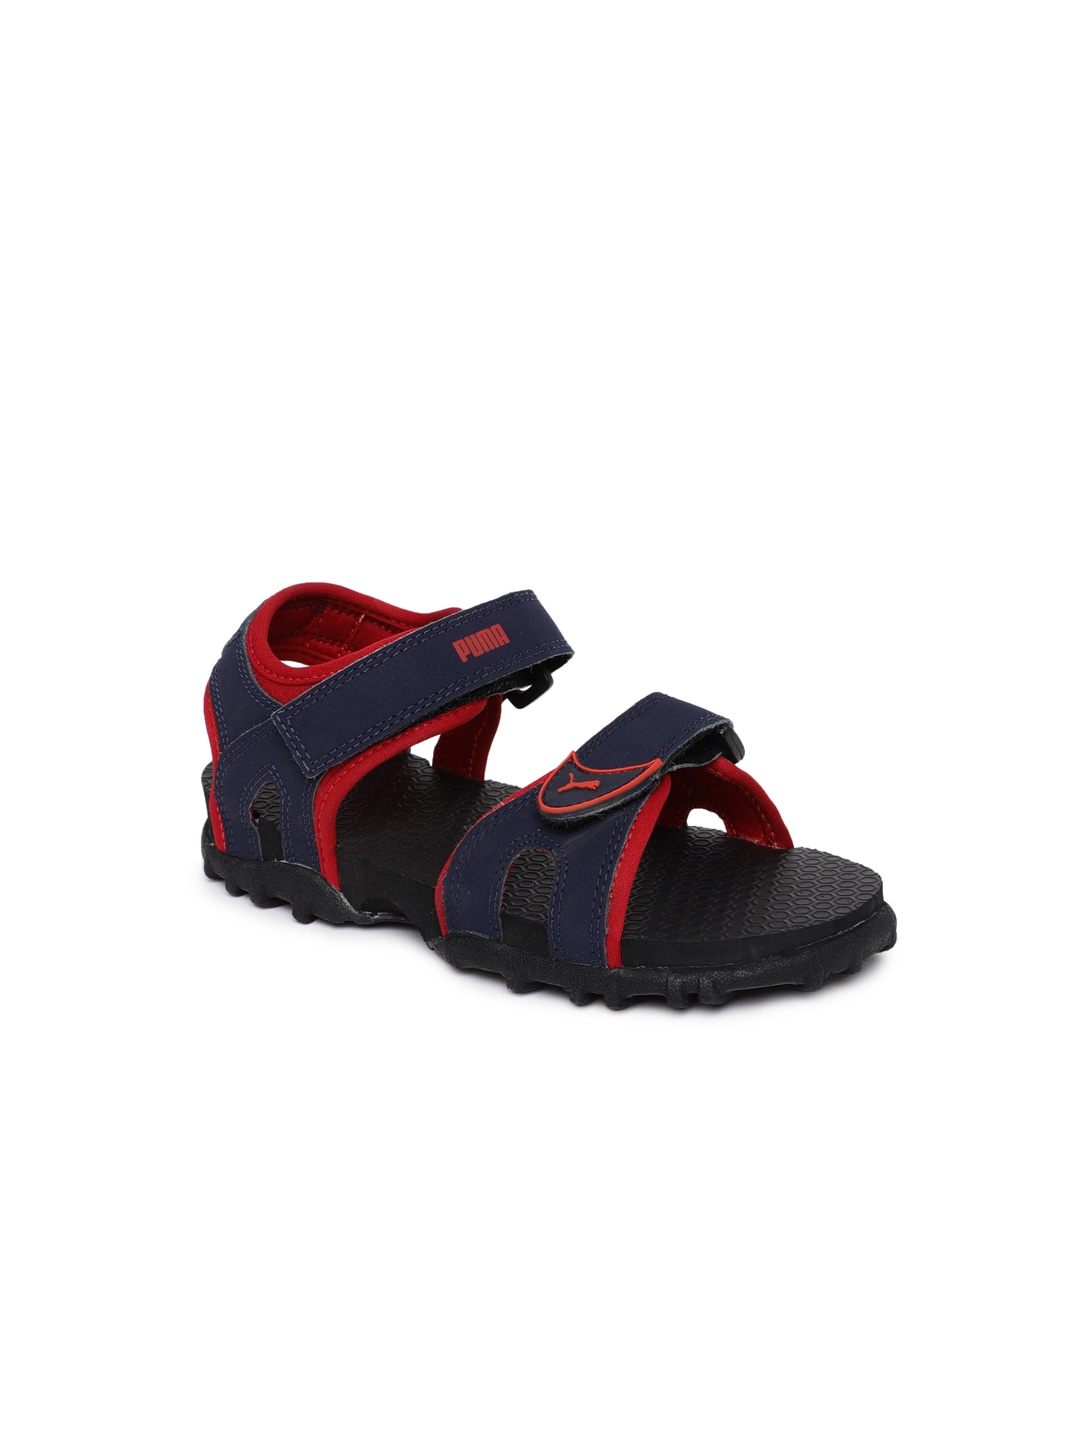 9ce0e3999a41 Top Brands Sports Sandals - Buy Top Brands Sports Sandals online in India